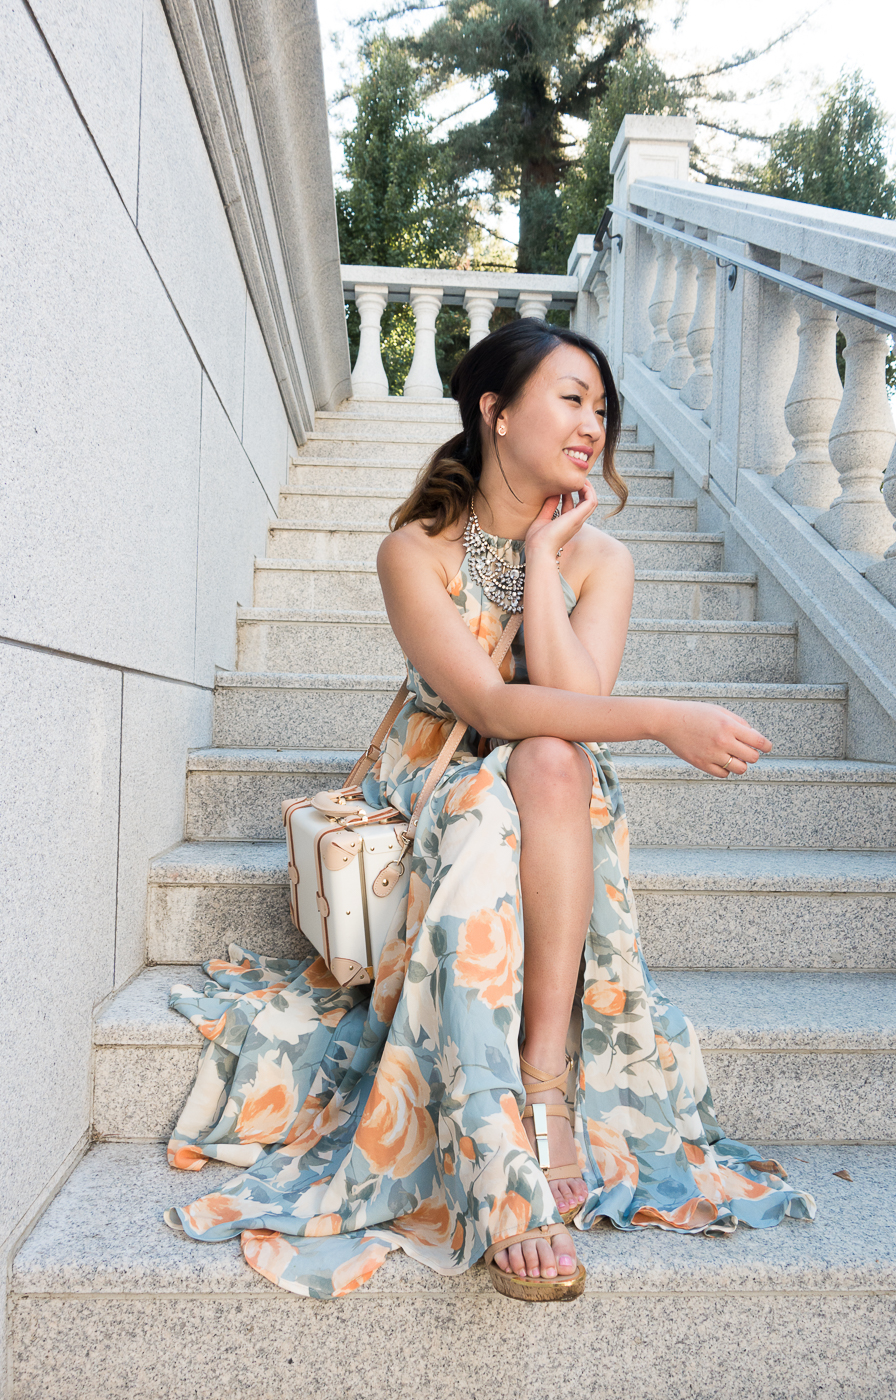 Lulu's Floral Maxi Dress & Steamline Luggage Sweetheart Collection Vanity Bag   The Chic Diary